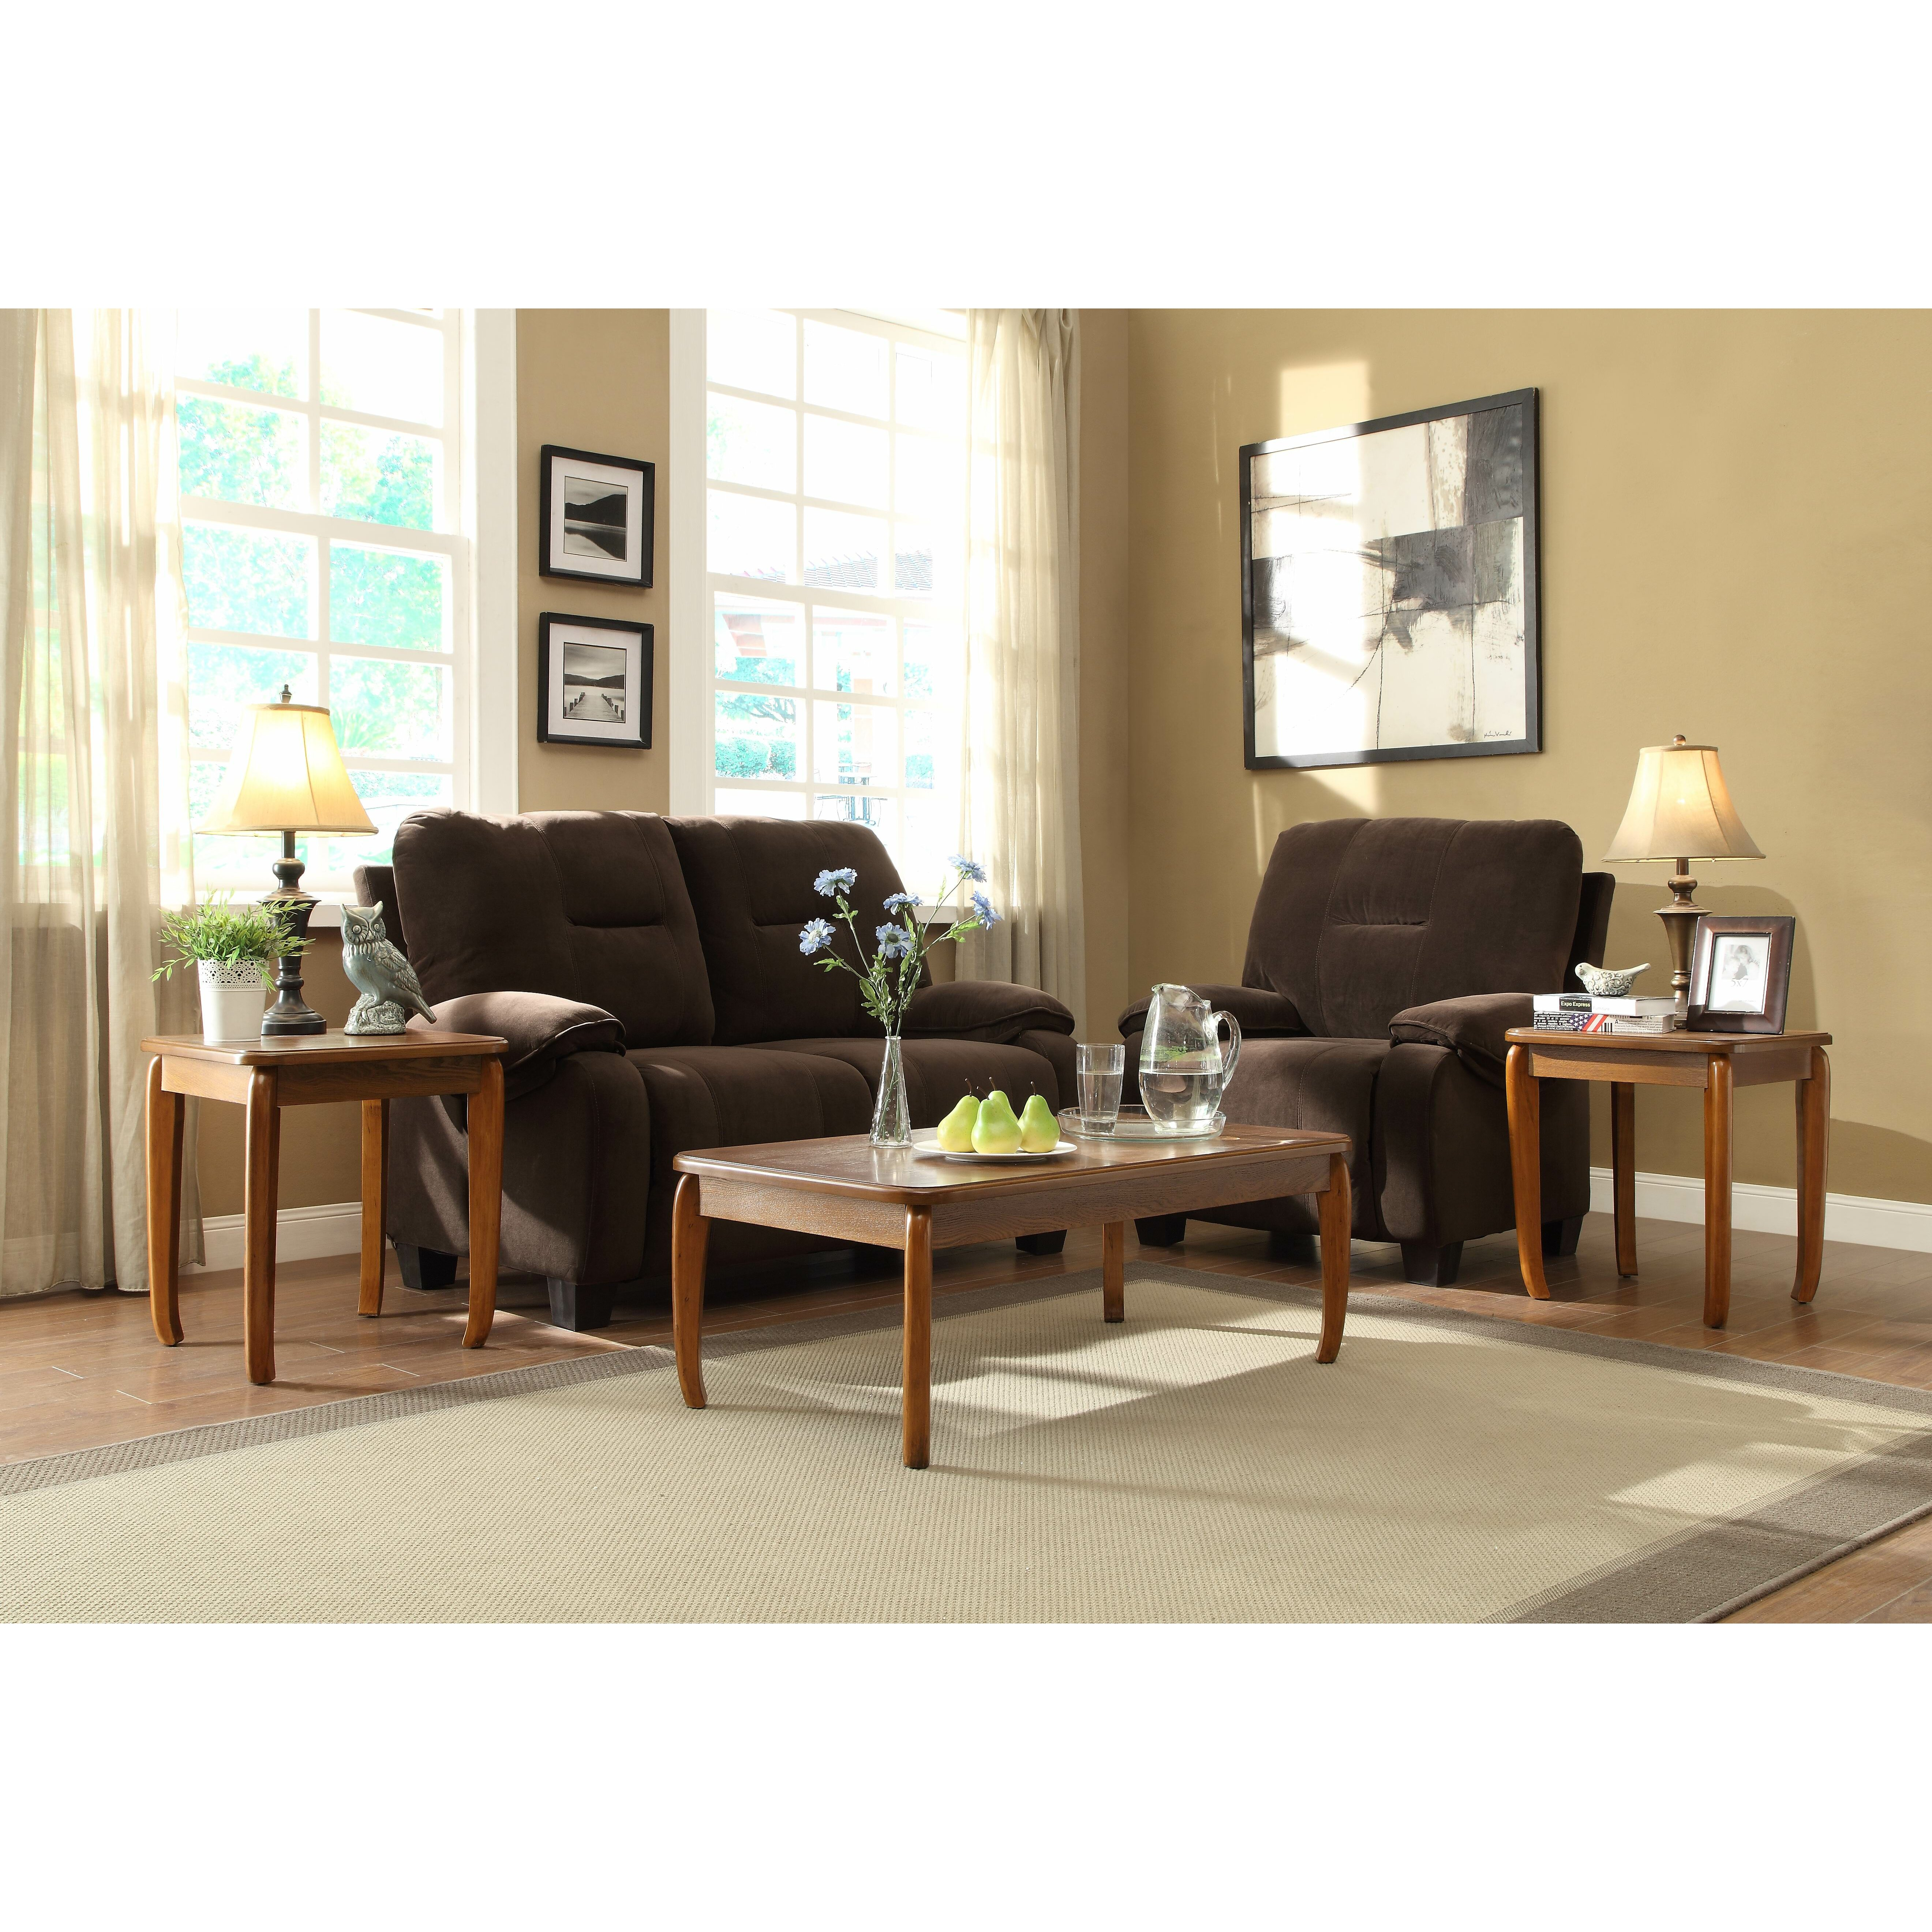 Woodhaven Living Room Furniture Woodhaven Hill Barnaby 3 Piece Occasional Coffee Table Set